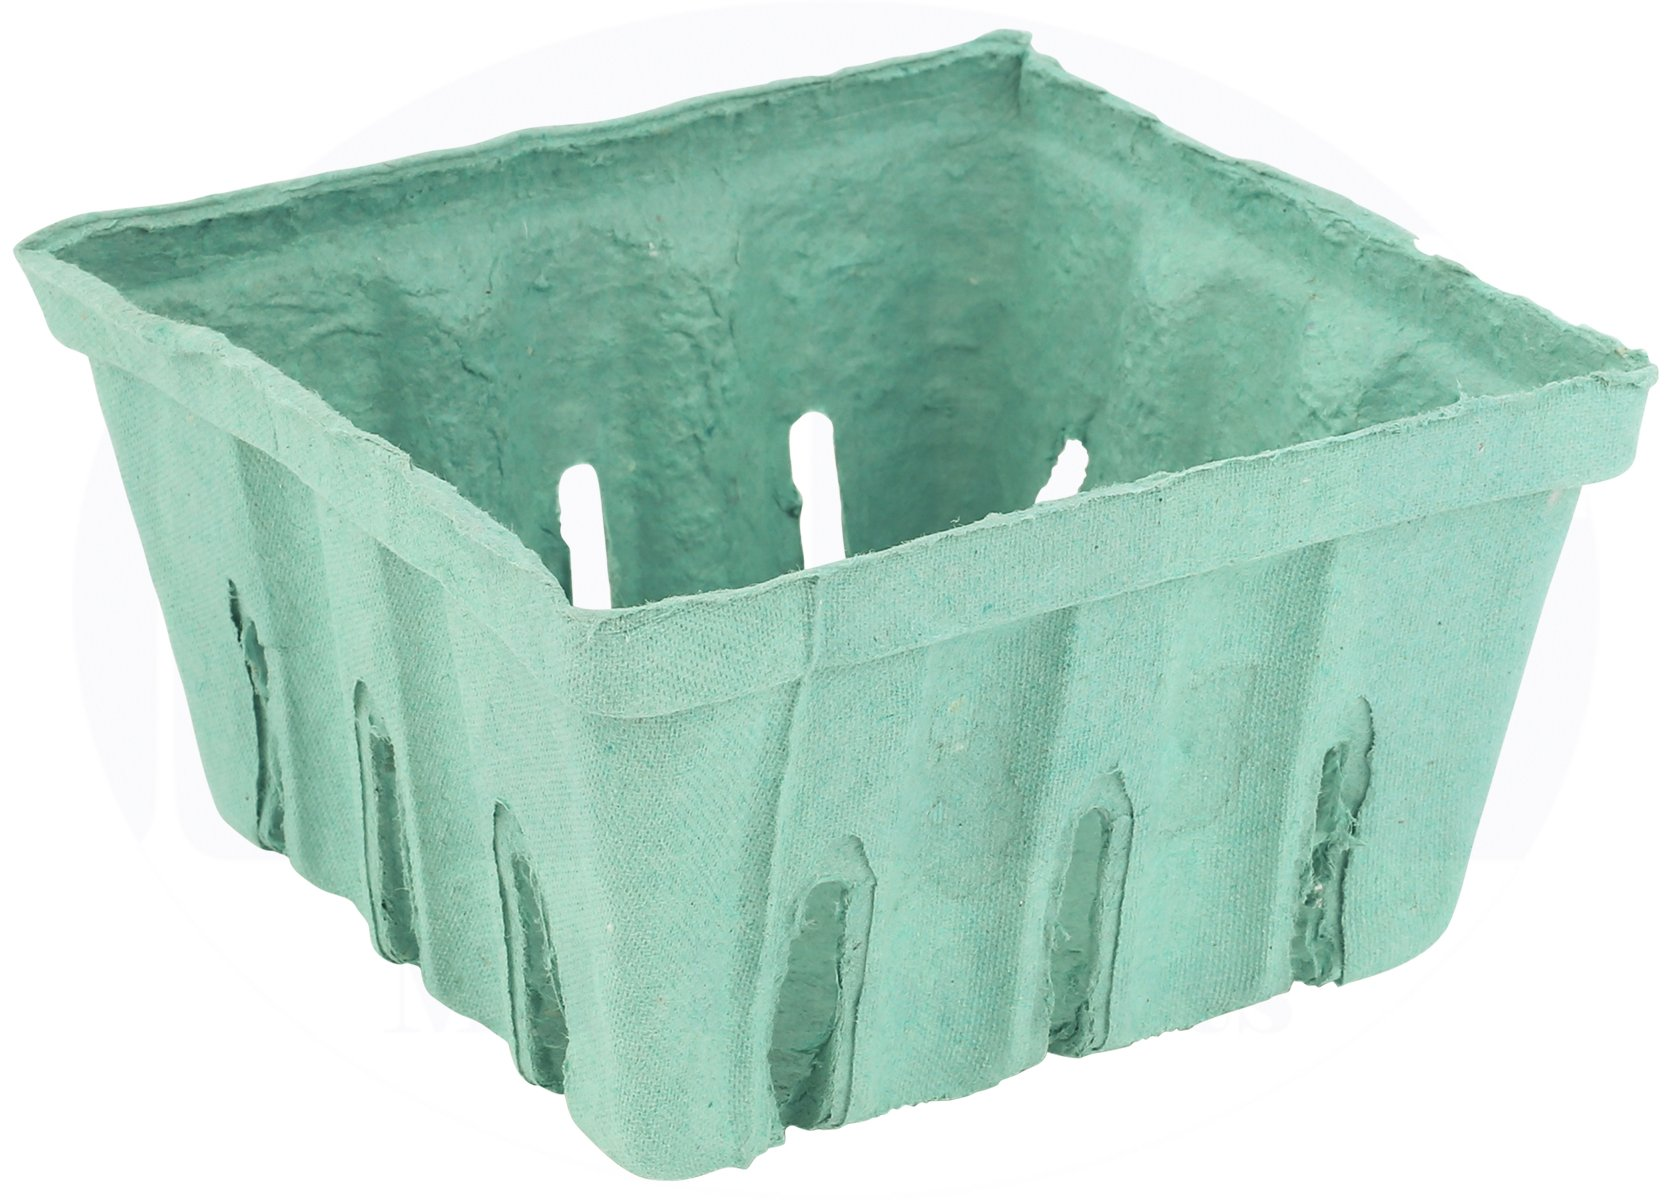 Green Molded Pulp Fiber Berry/Produce Vented 1 Quart Basket/Container by MT Products - (15 Pieces)